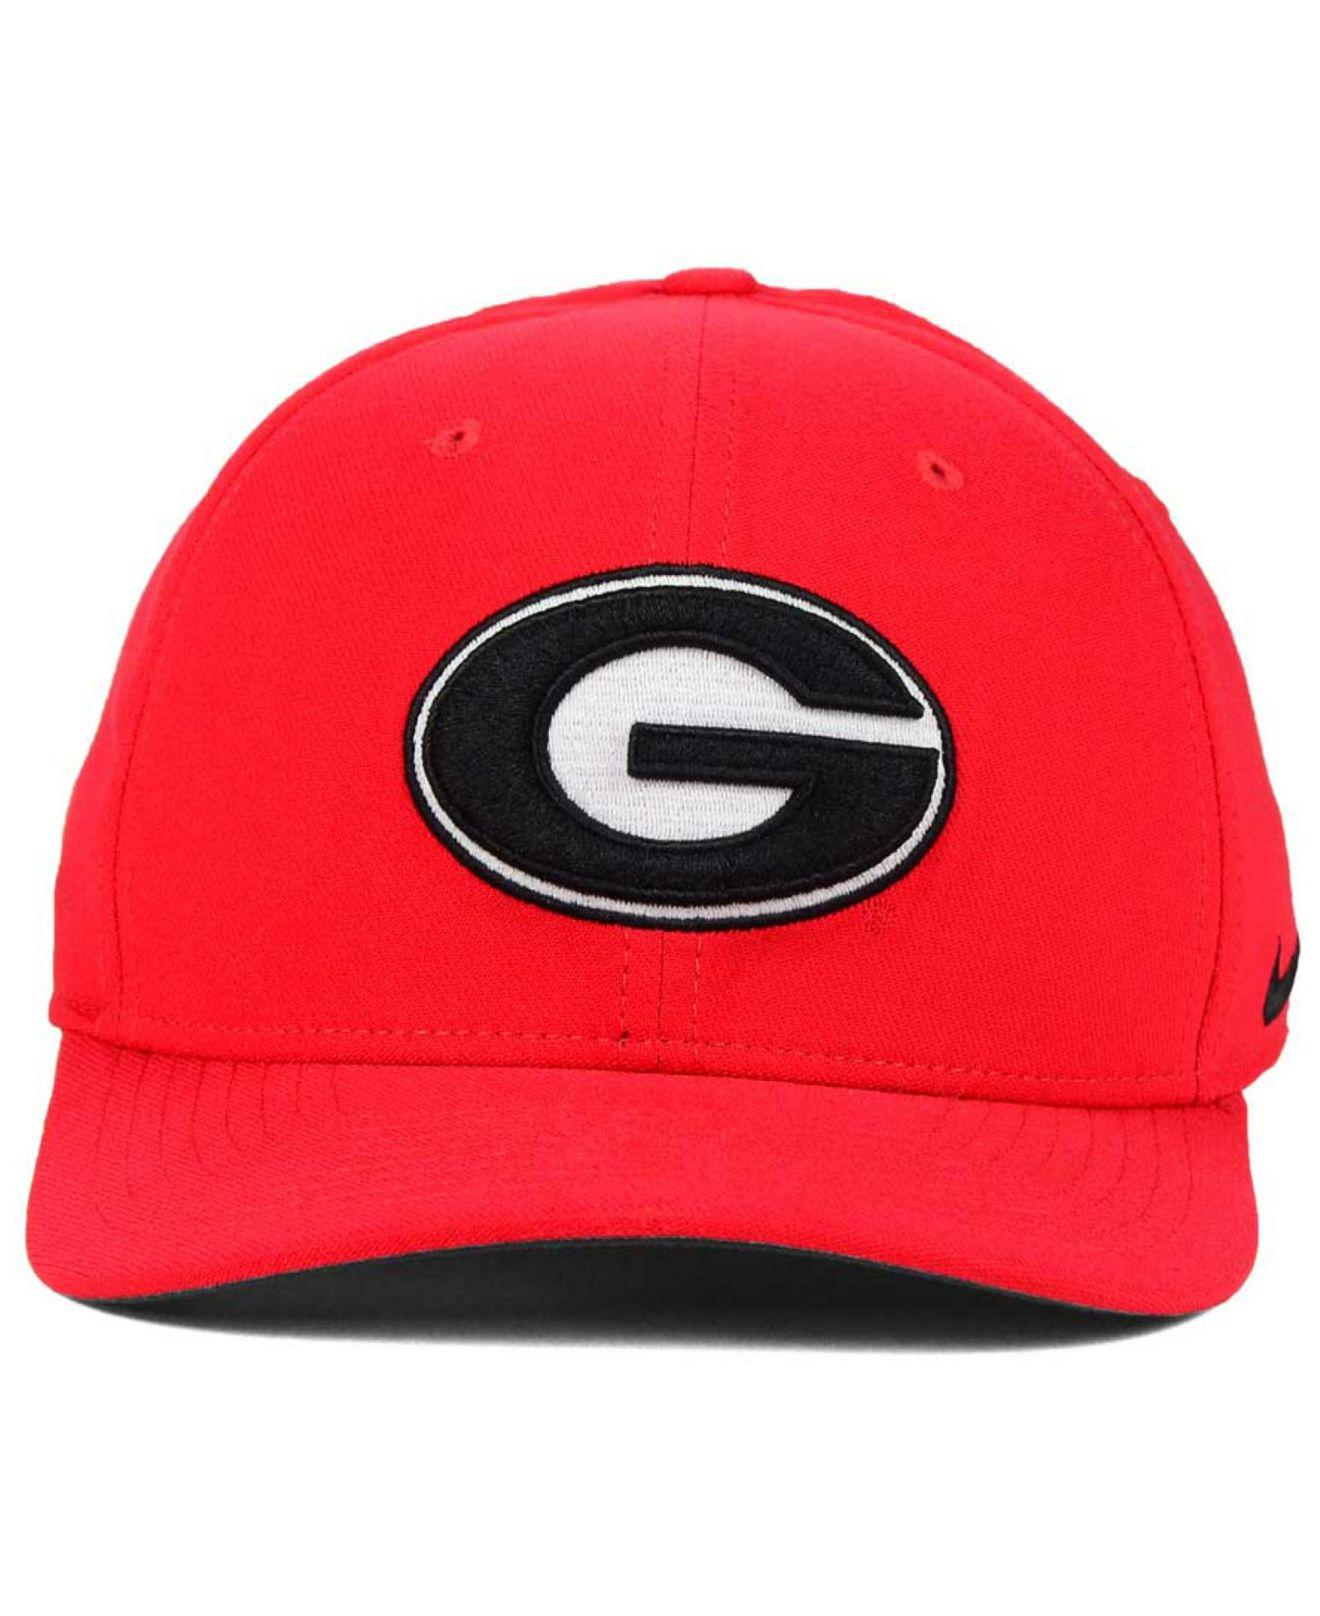 13ecf4e6 Lyst - Nike Georgia Bulldogs Classic Swoosh Cap in Red for Men